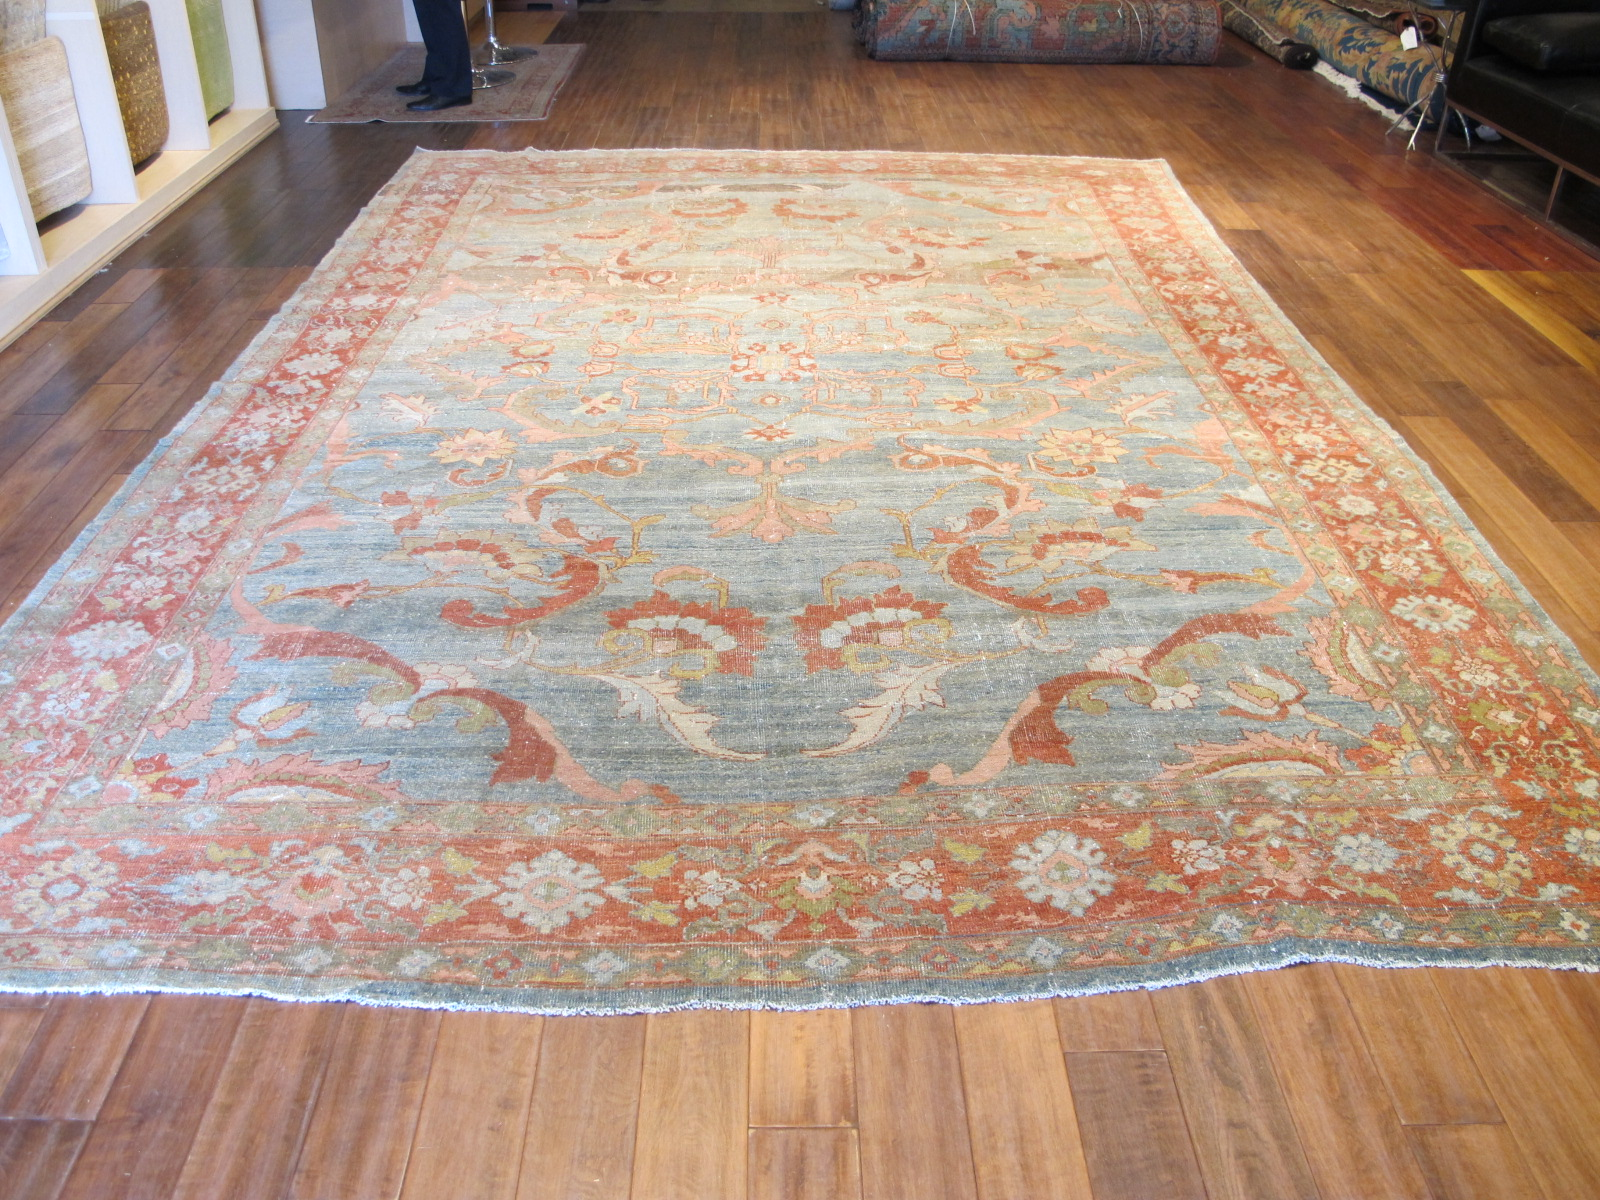 12998-antique-persian-sultanabad-rug-94-x-133-2